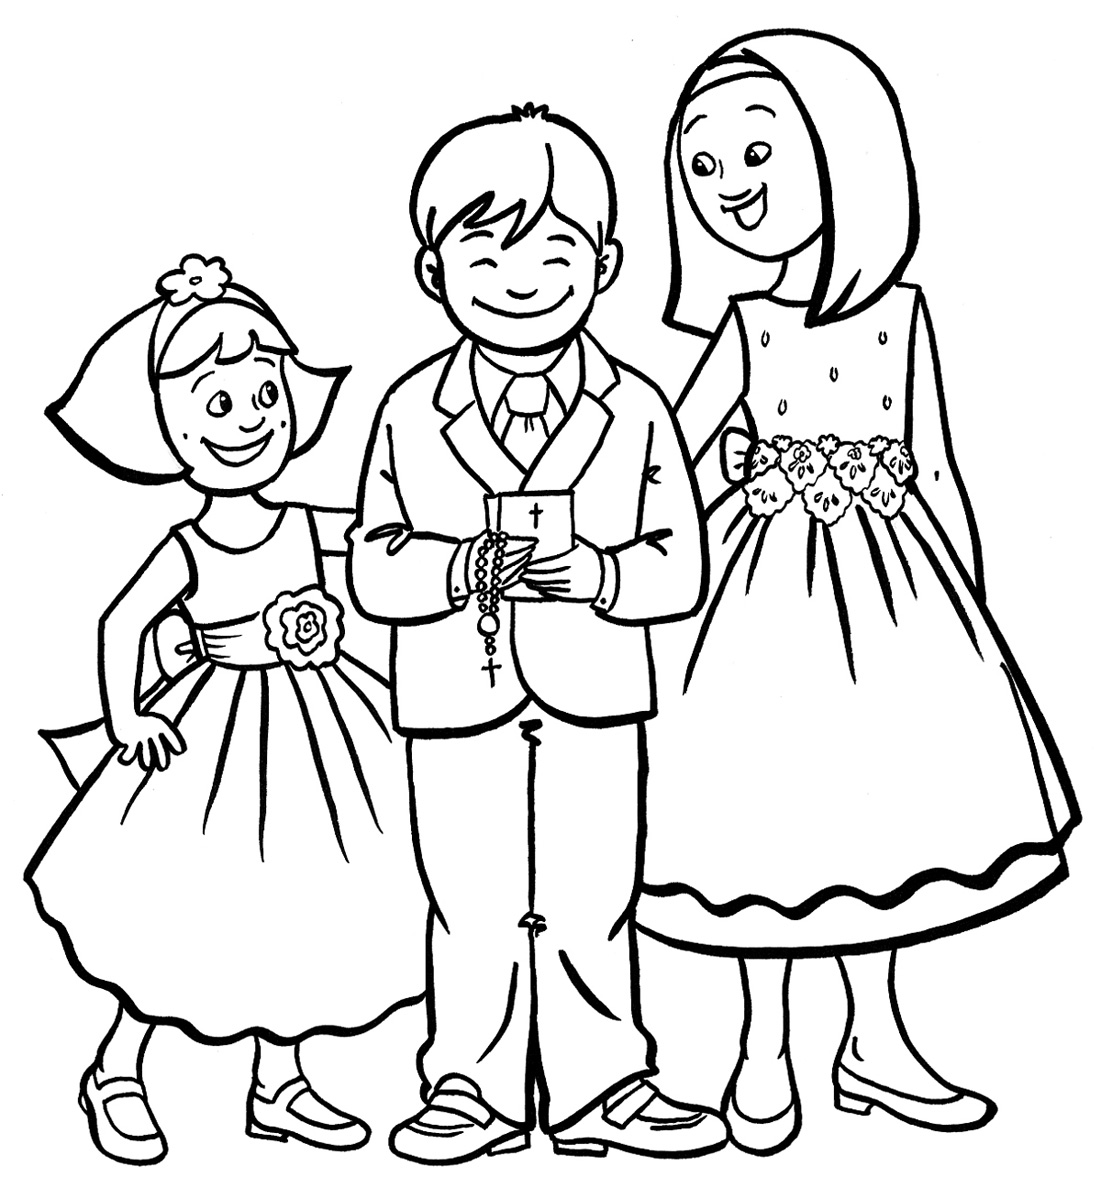 Coloring pages communion clipart best for Communion for kids coloring pages